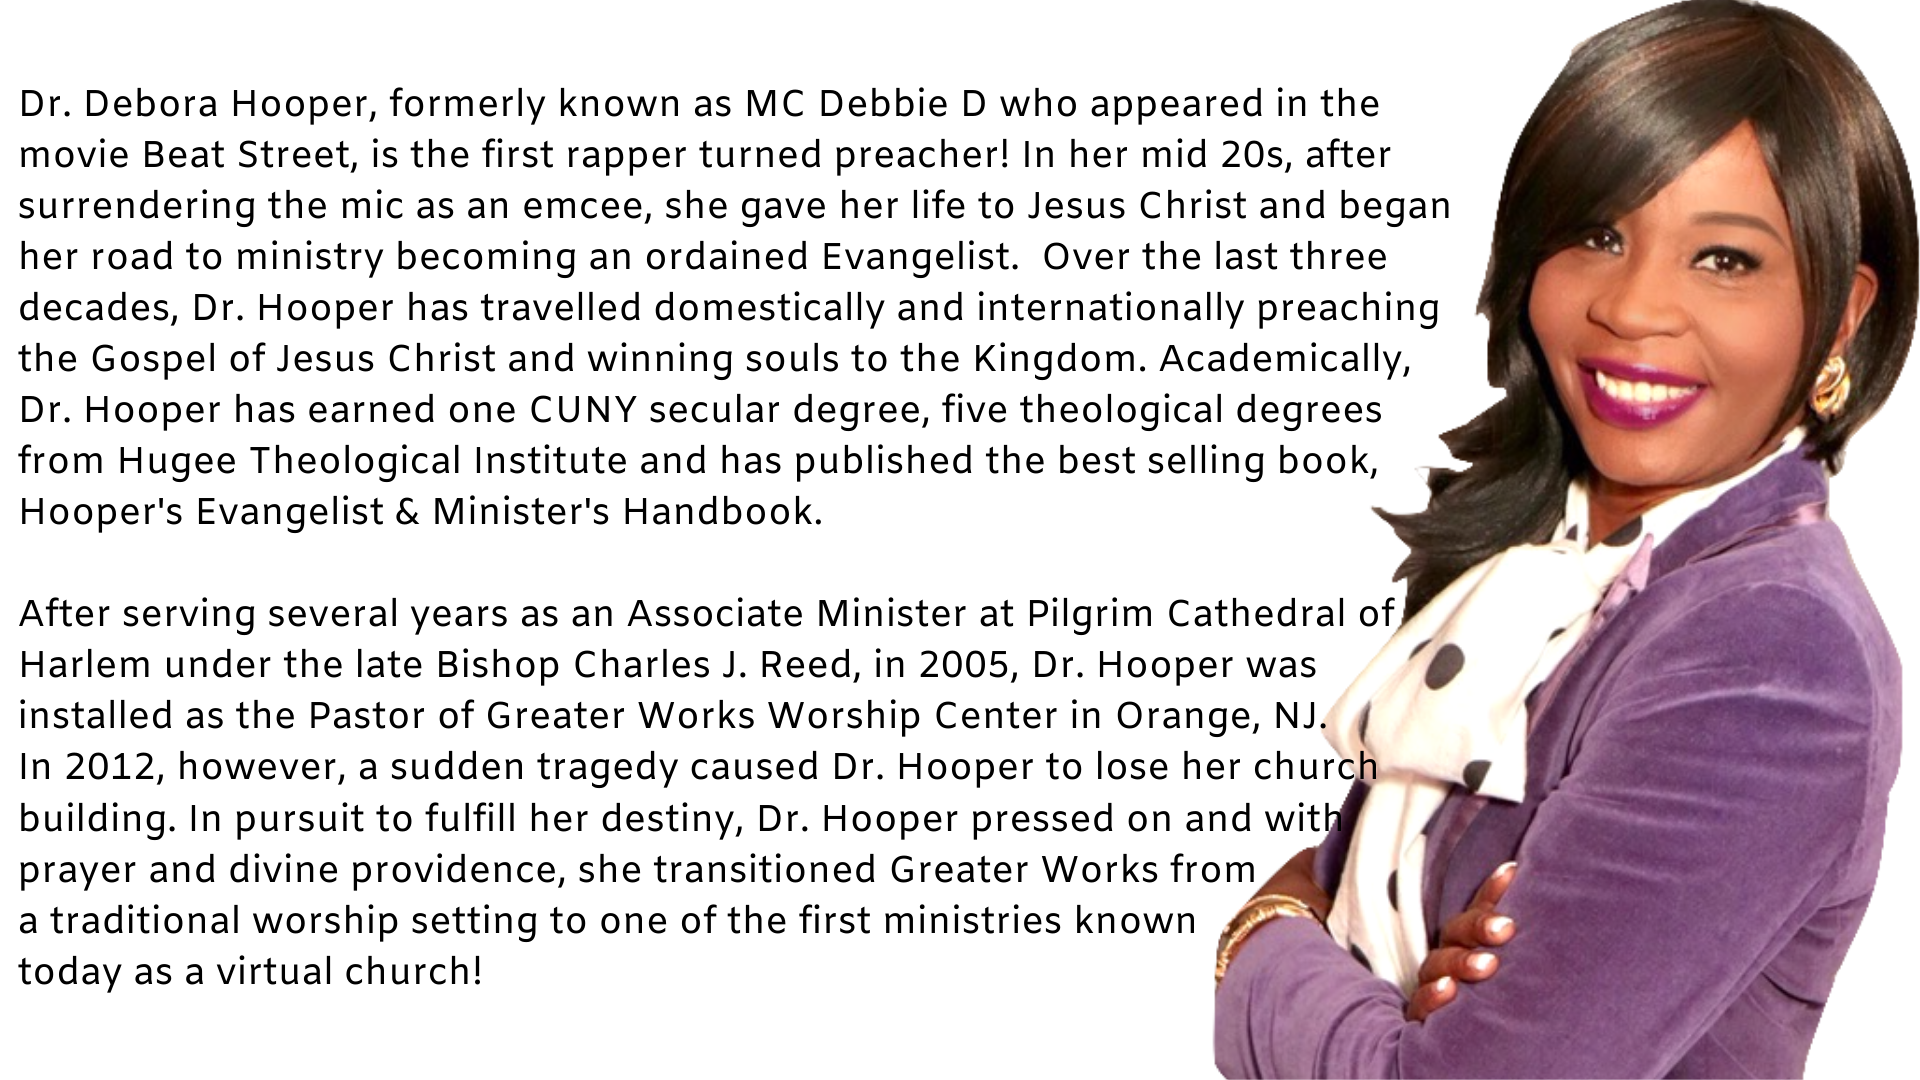 About Dr. Hooper